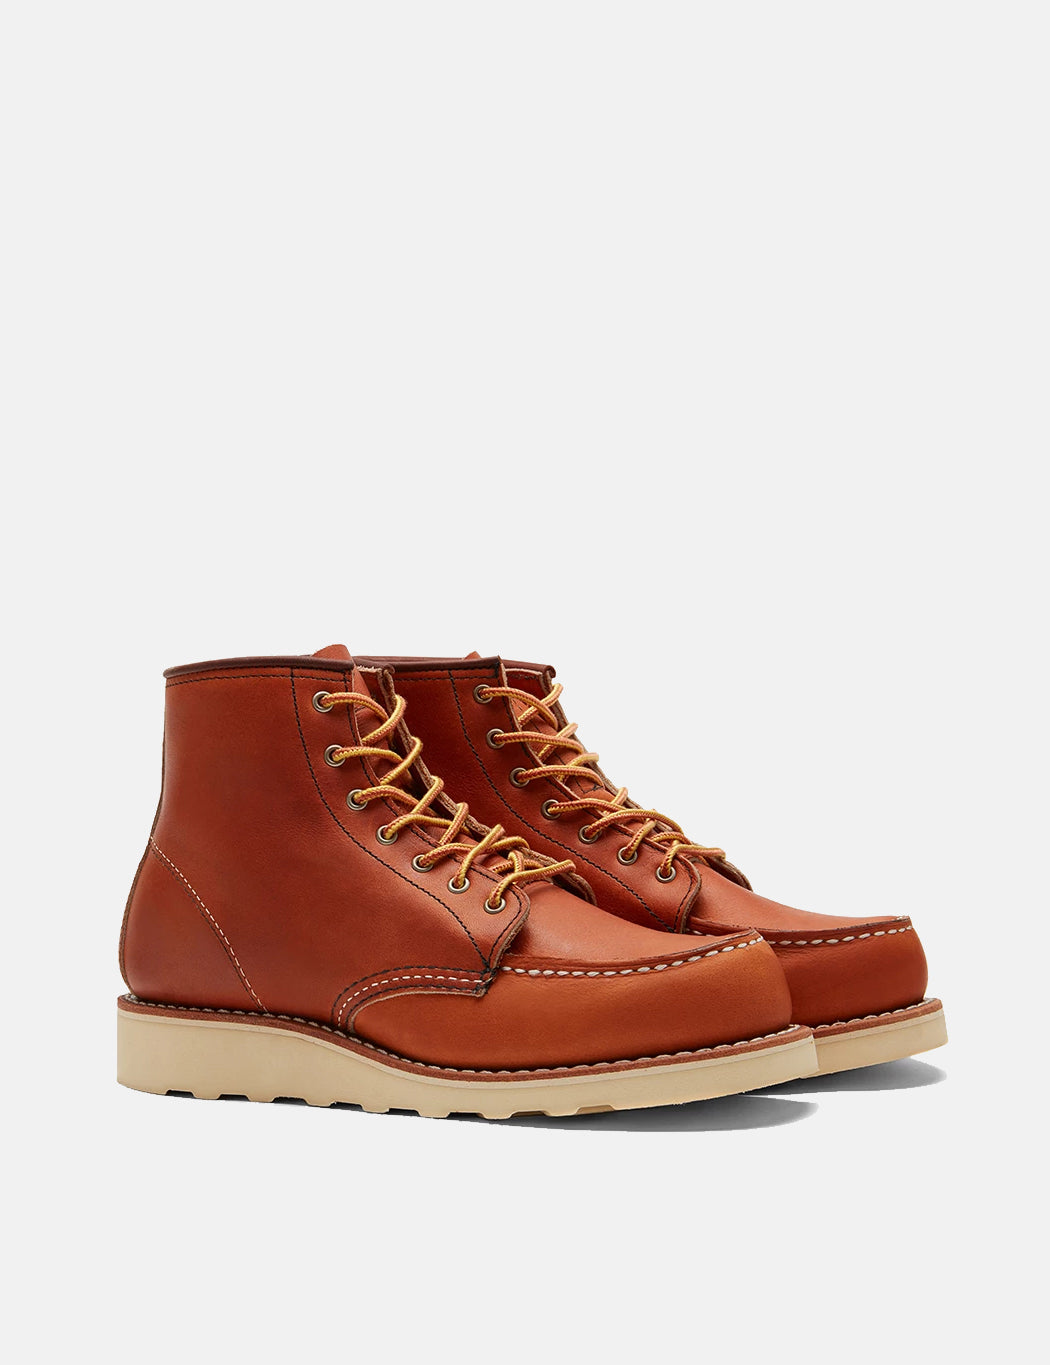 Women's Red Wing Moc Toe Boots 3375 - Tan Oro Legacy | UrbanExcess.com